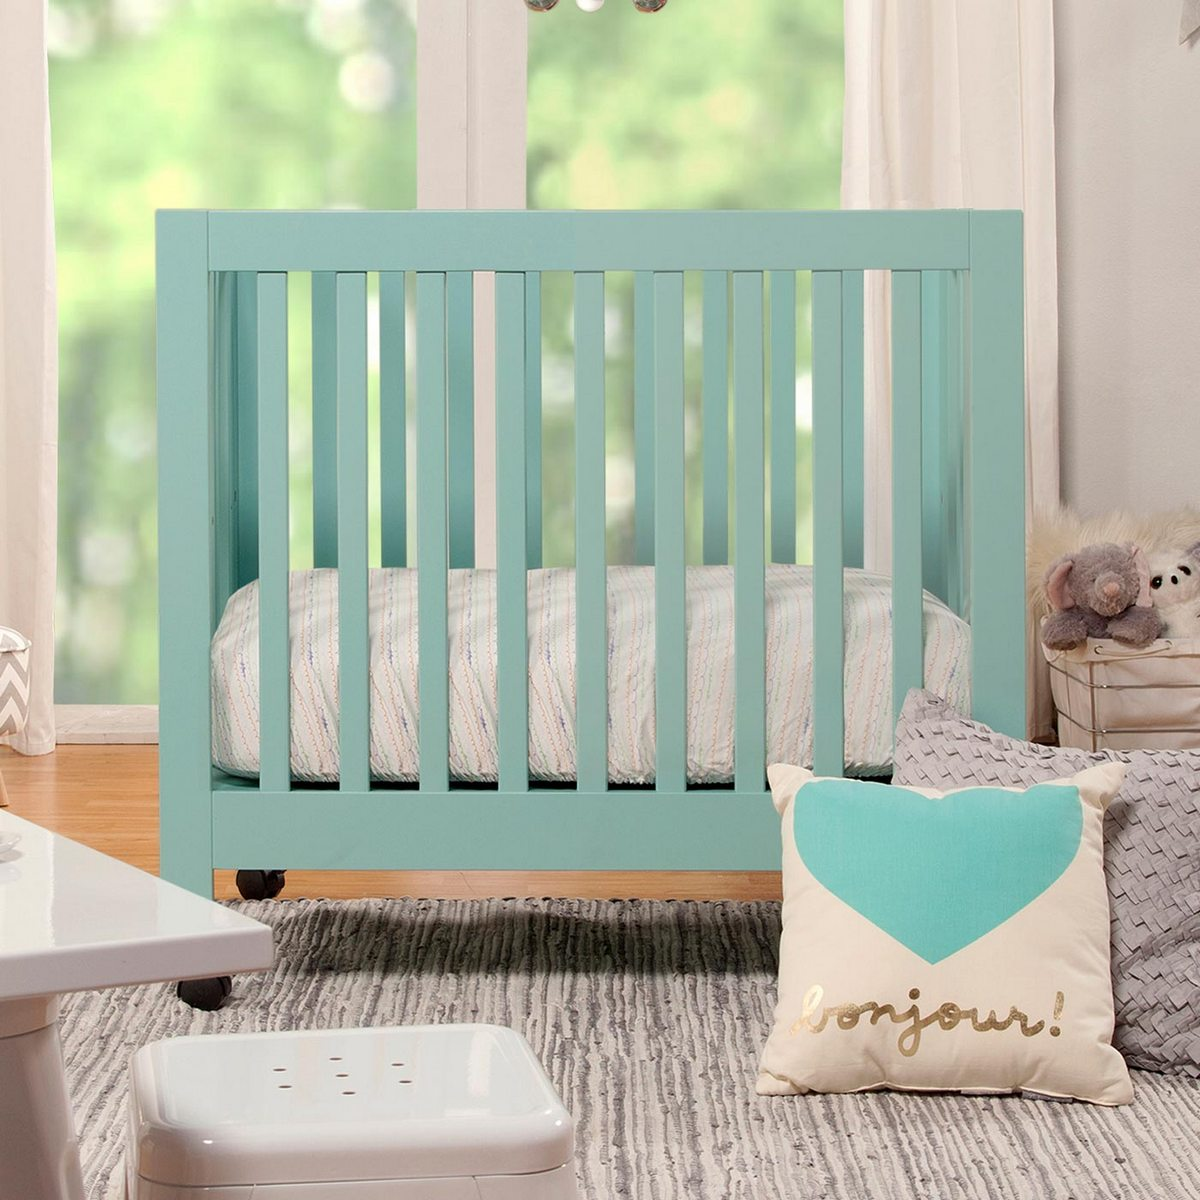 babyletto origami mini crib in lagoon free shipping   -